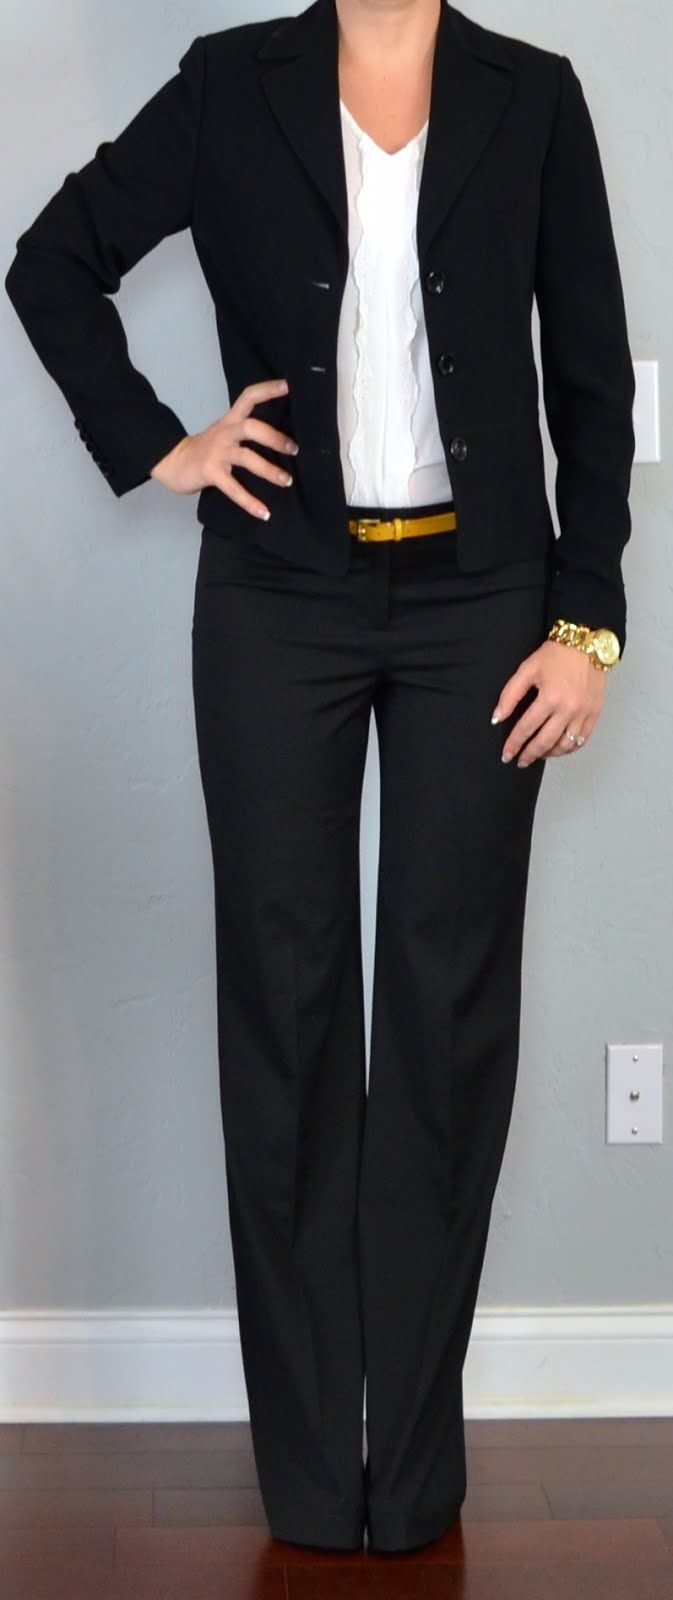 I like the black with the colorful belt. Outfit Posts: outfit post: black suit jacket, black suit pants, white ruffle blouse, yellow belt